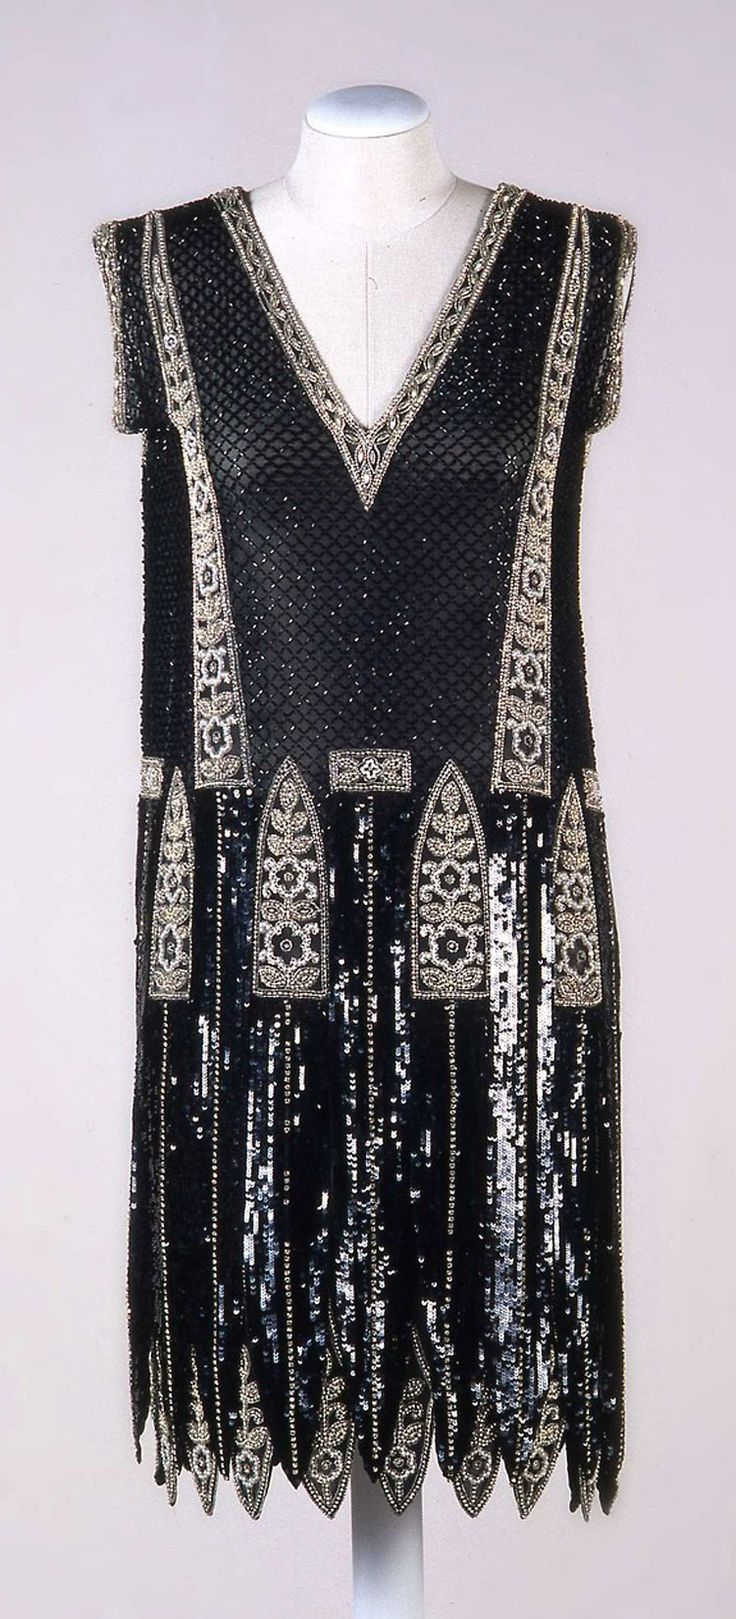 Beaded Silk Evening Dress, Sartoria Buscaroli, Bologna, ca. 1925. Collection Galleria del Costume di Palazzo Pitti